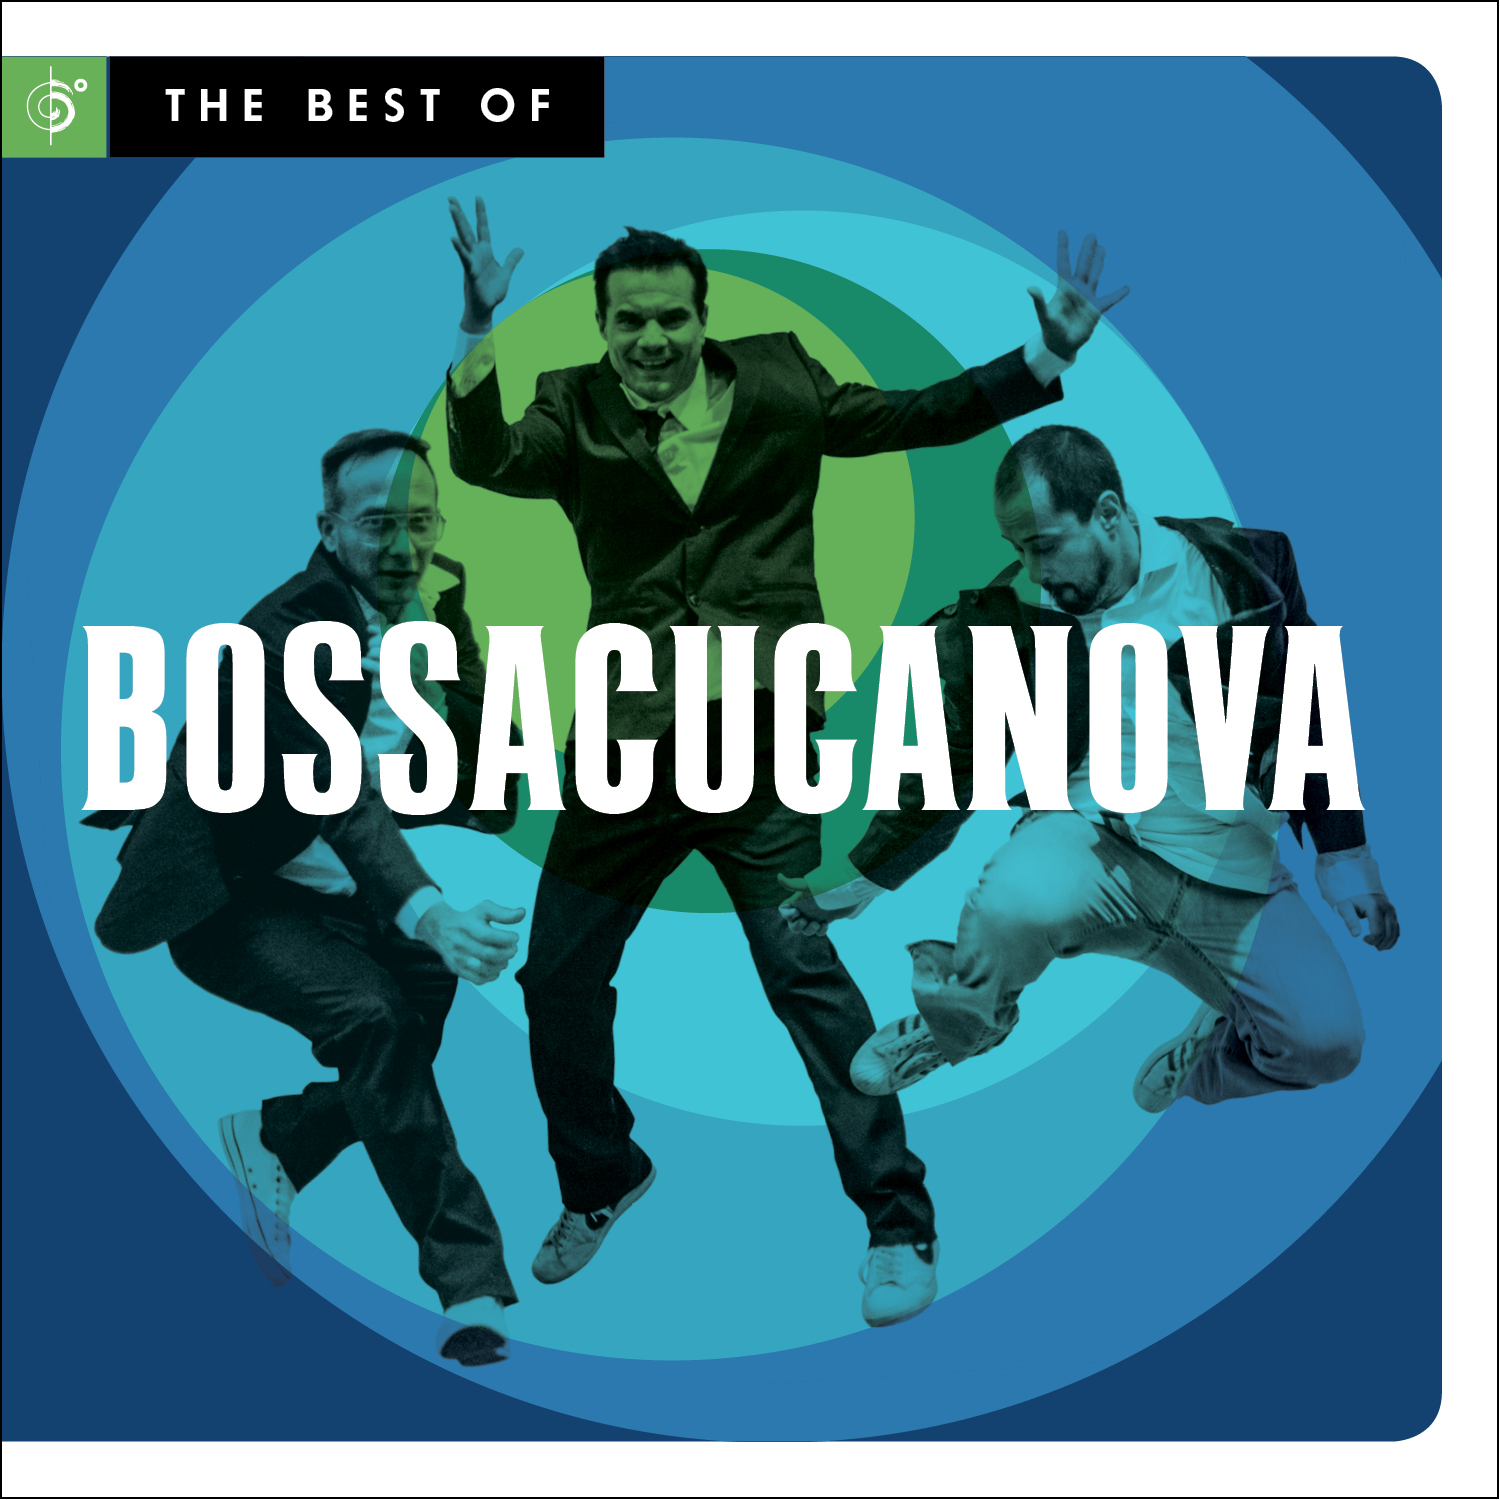 The Best of Bossacucanova Out Now!